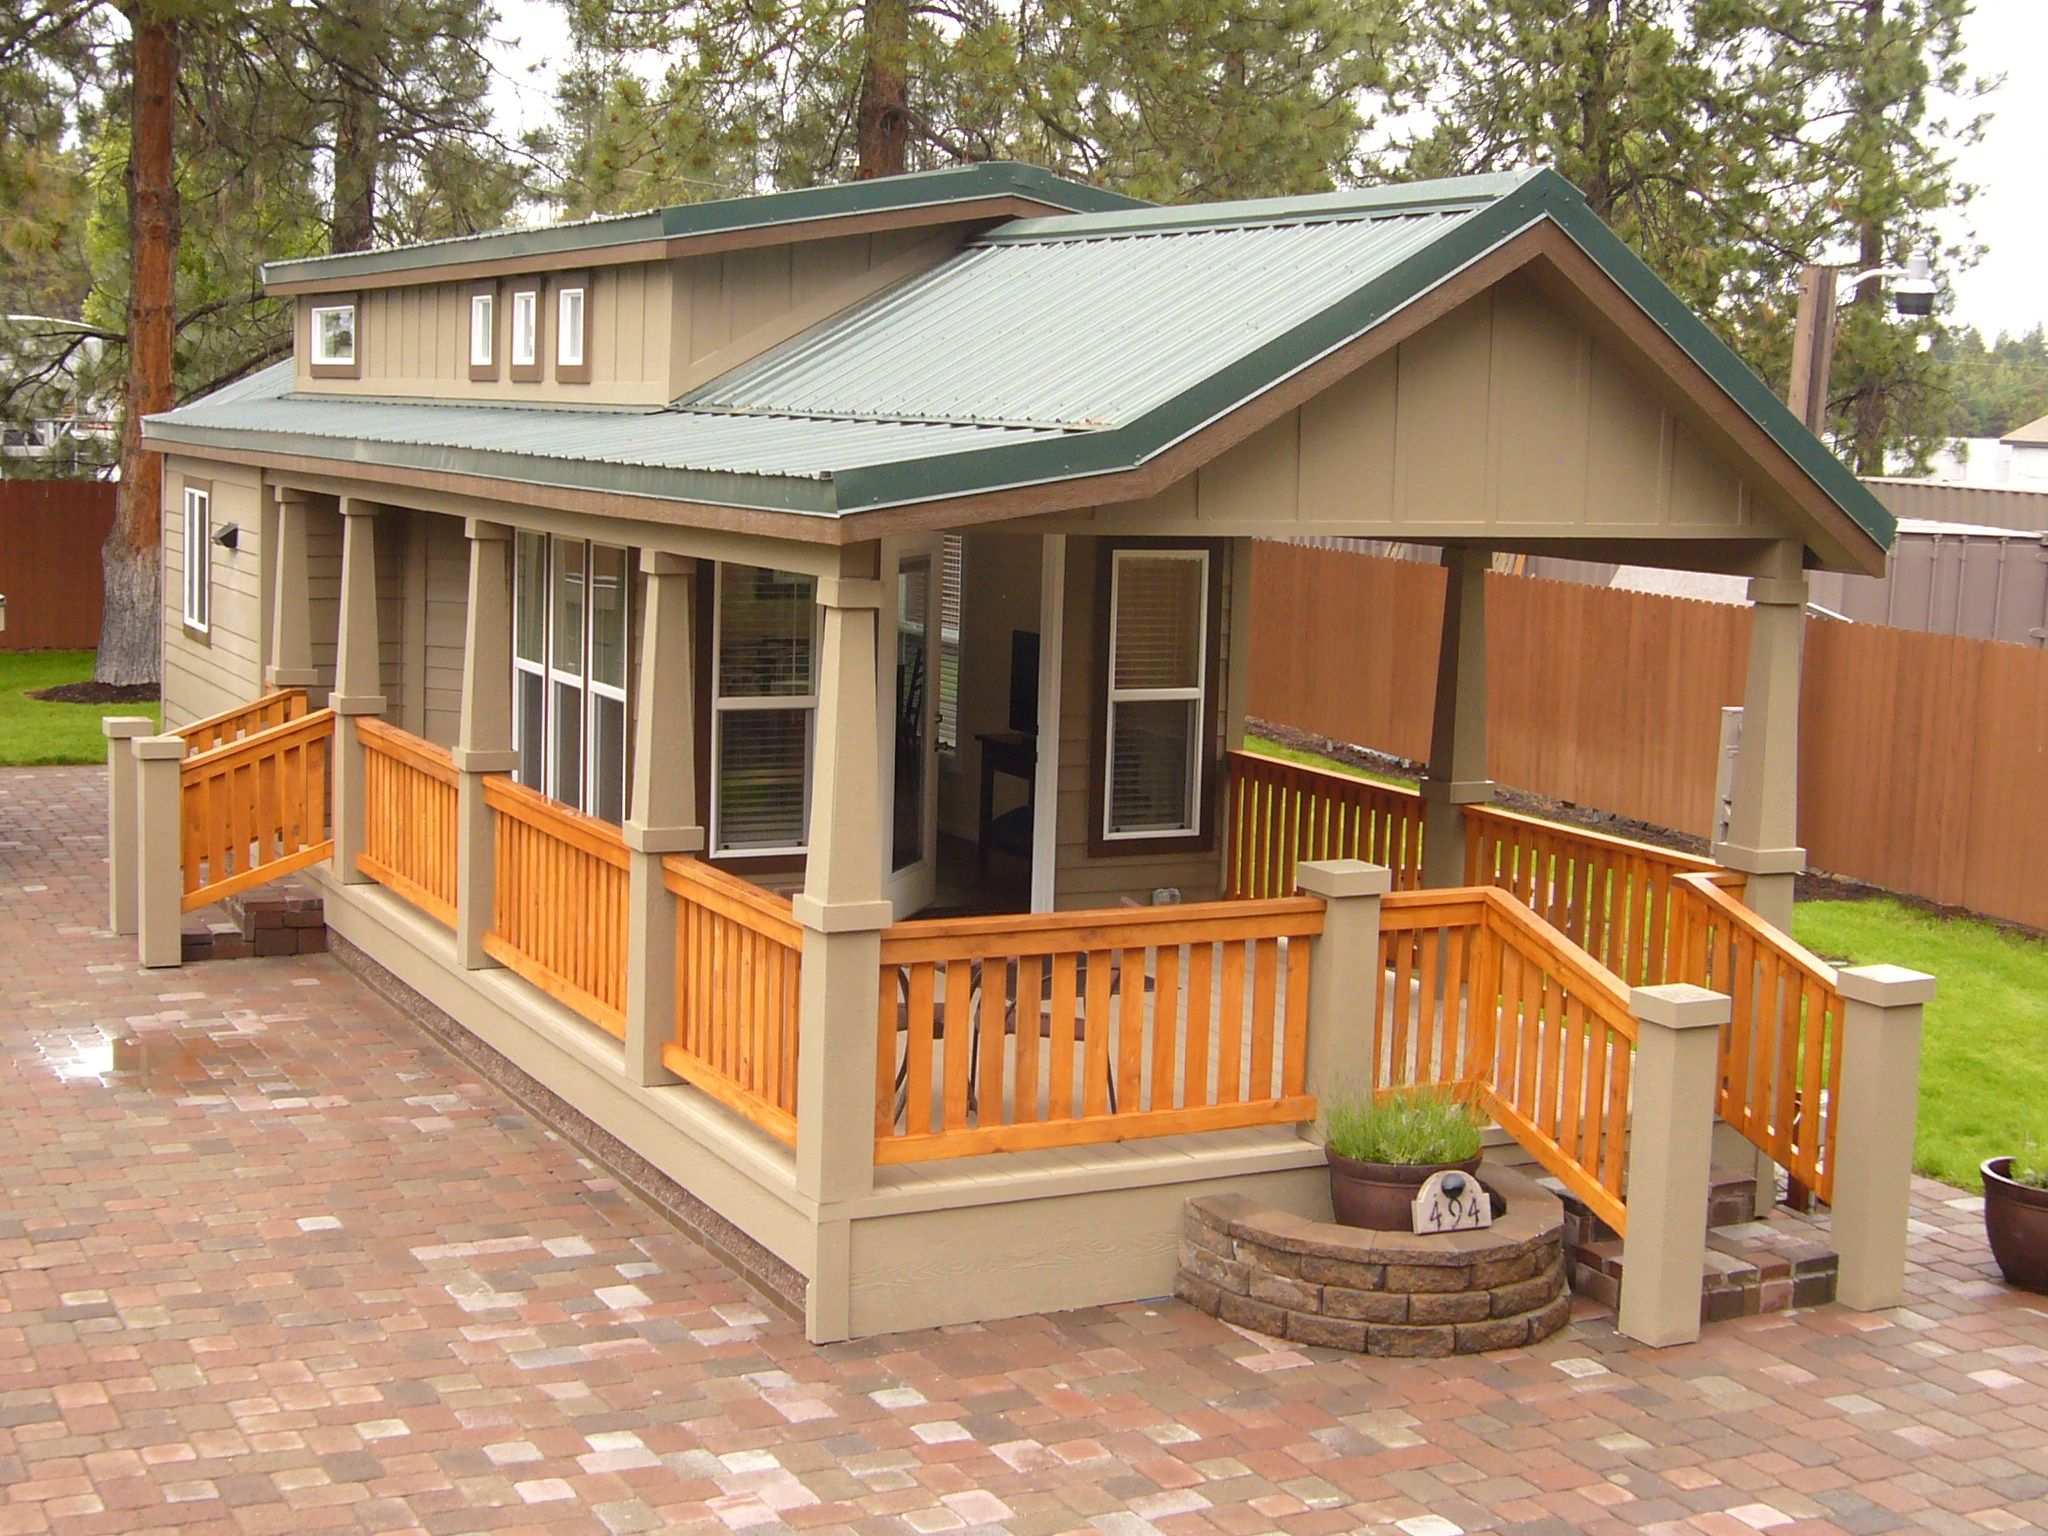 Explore Park Model Rv Homes And More